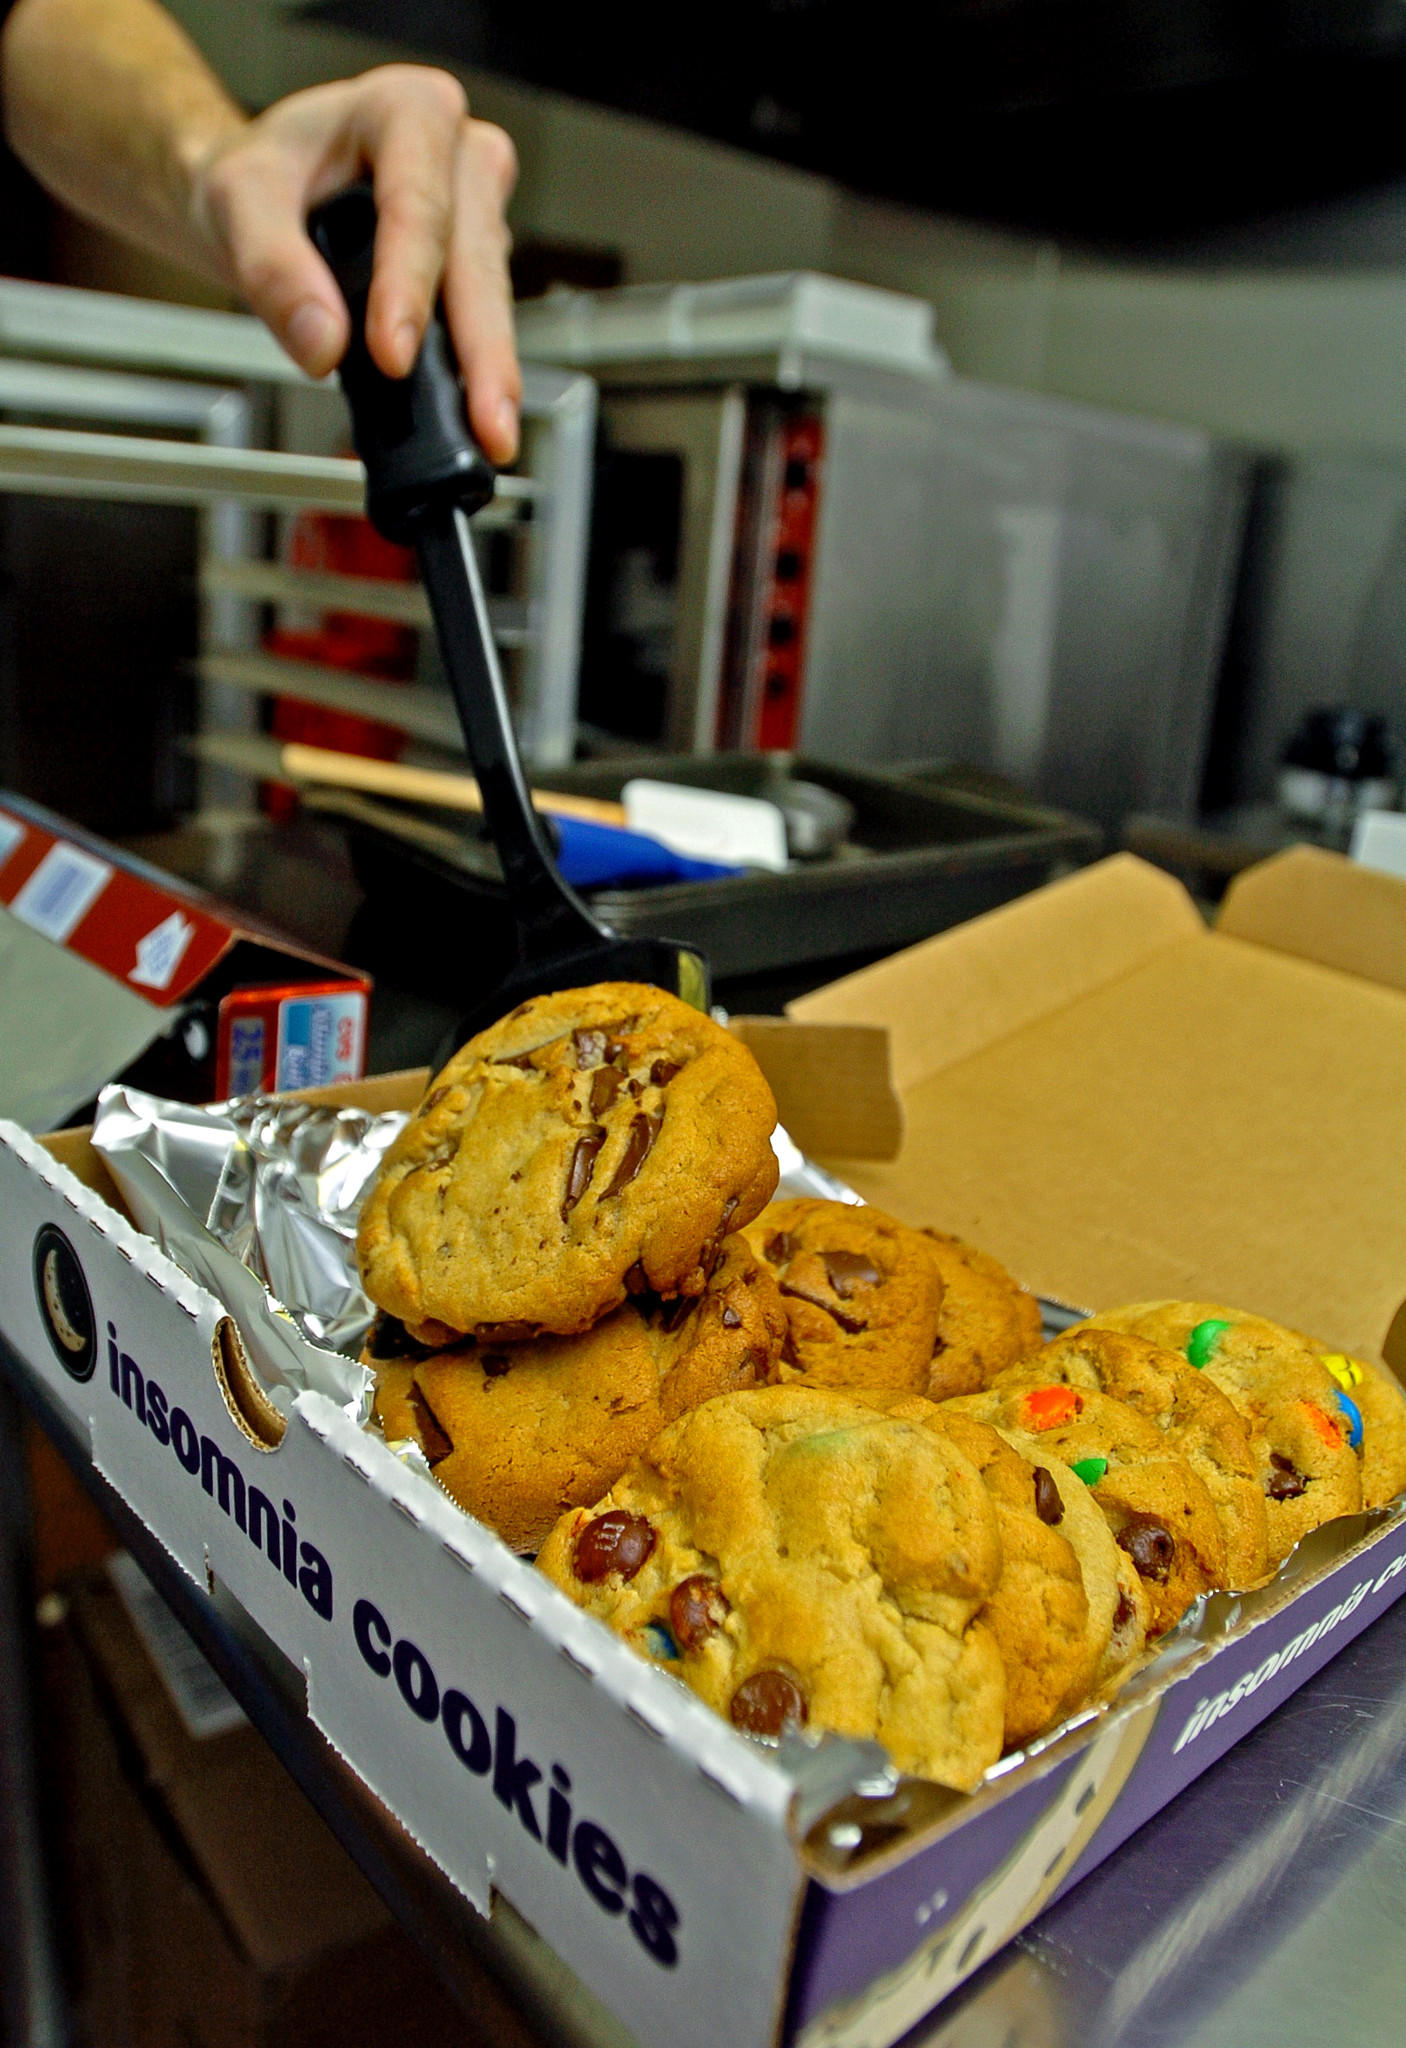 Insomnia Cookies is coming to Charles Village